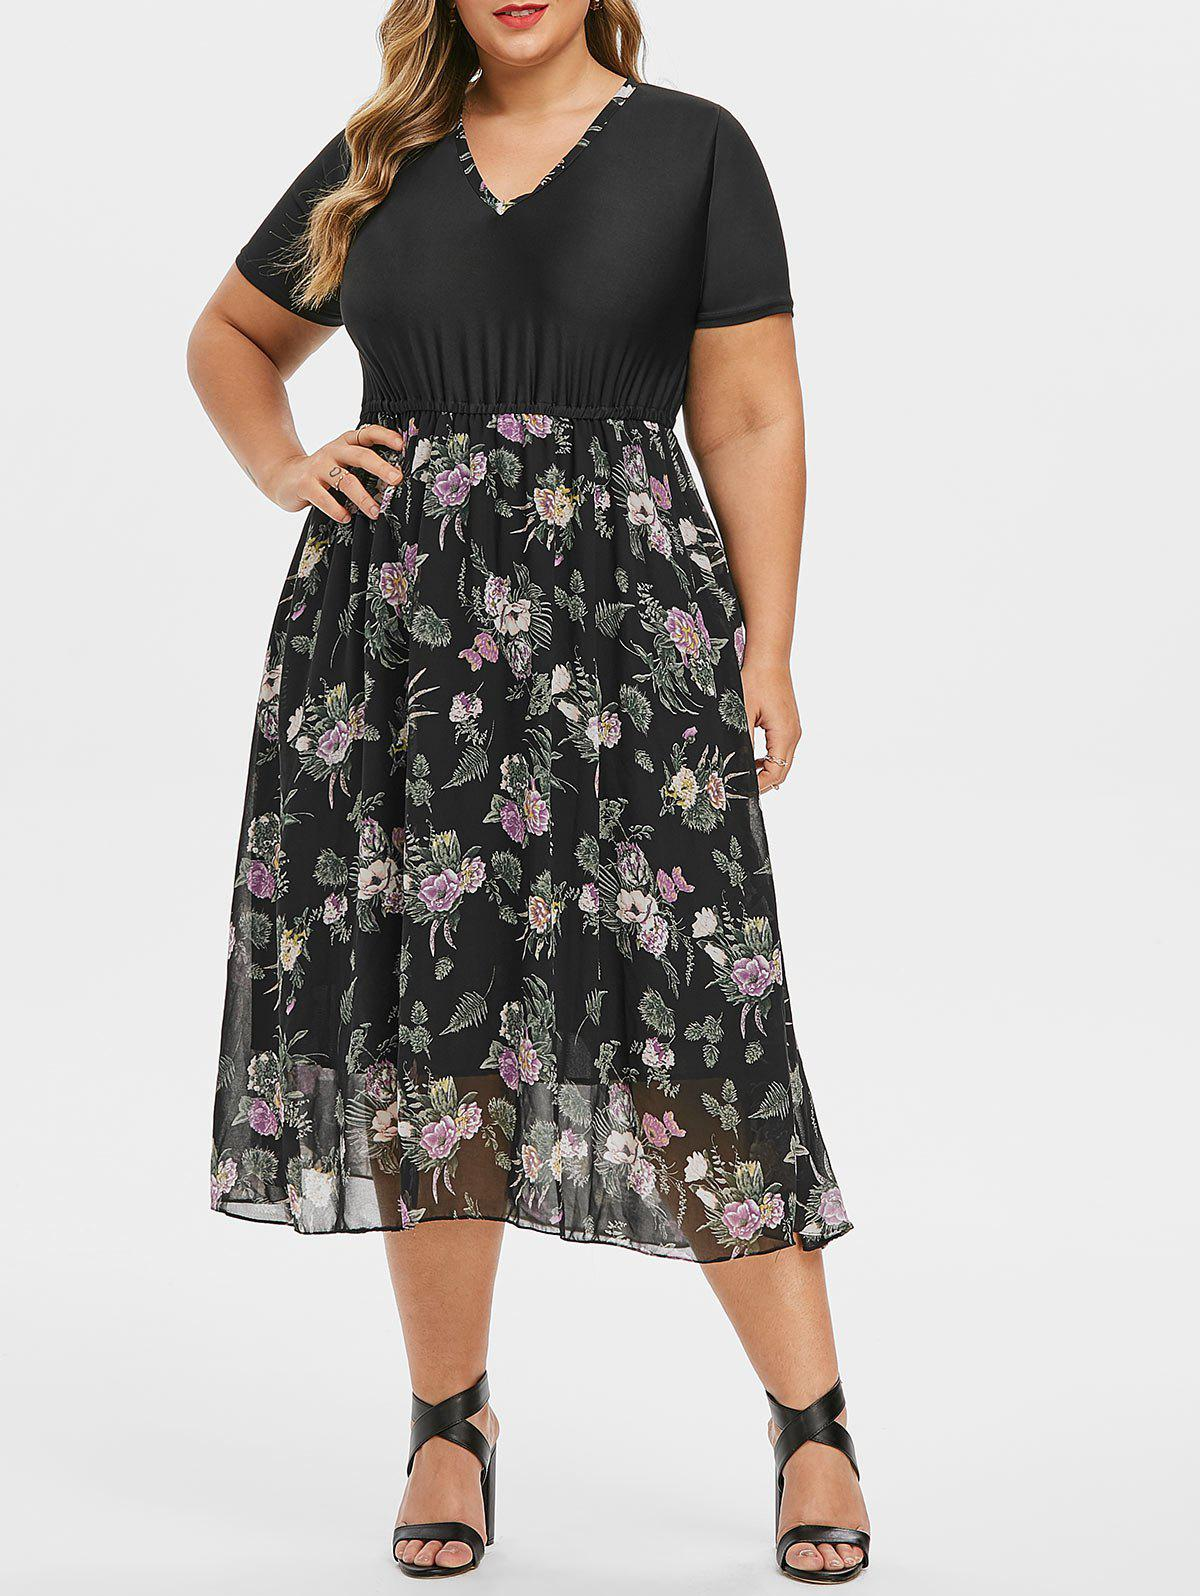 Contrast Floral V Neck A Line Plus Size Dress - BLACK 3X